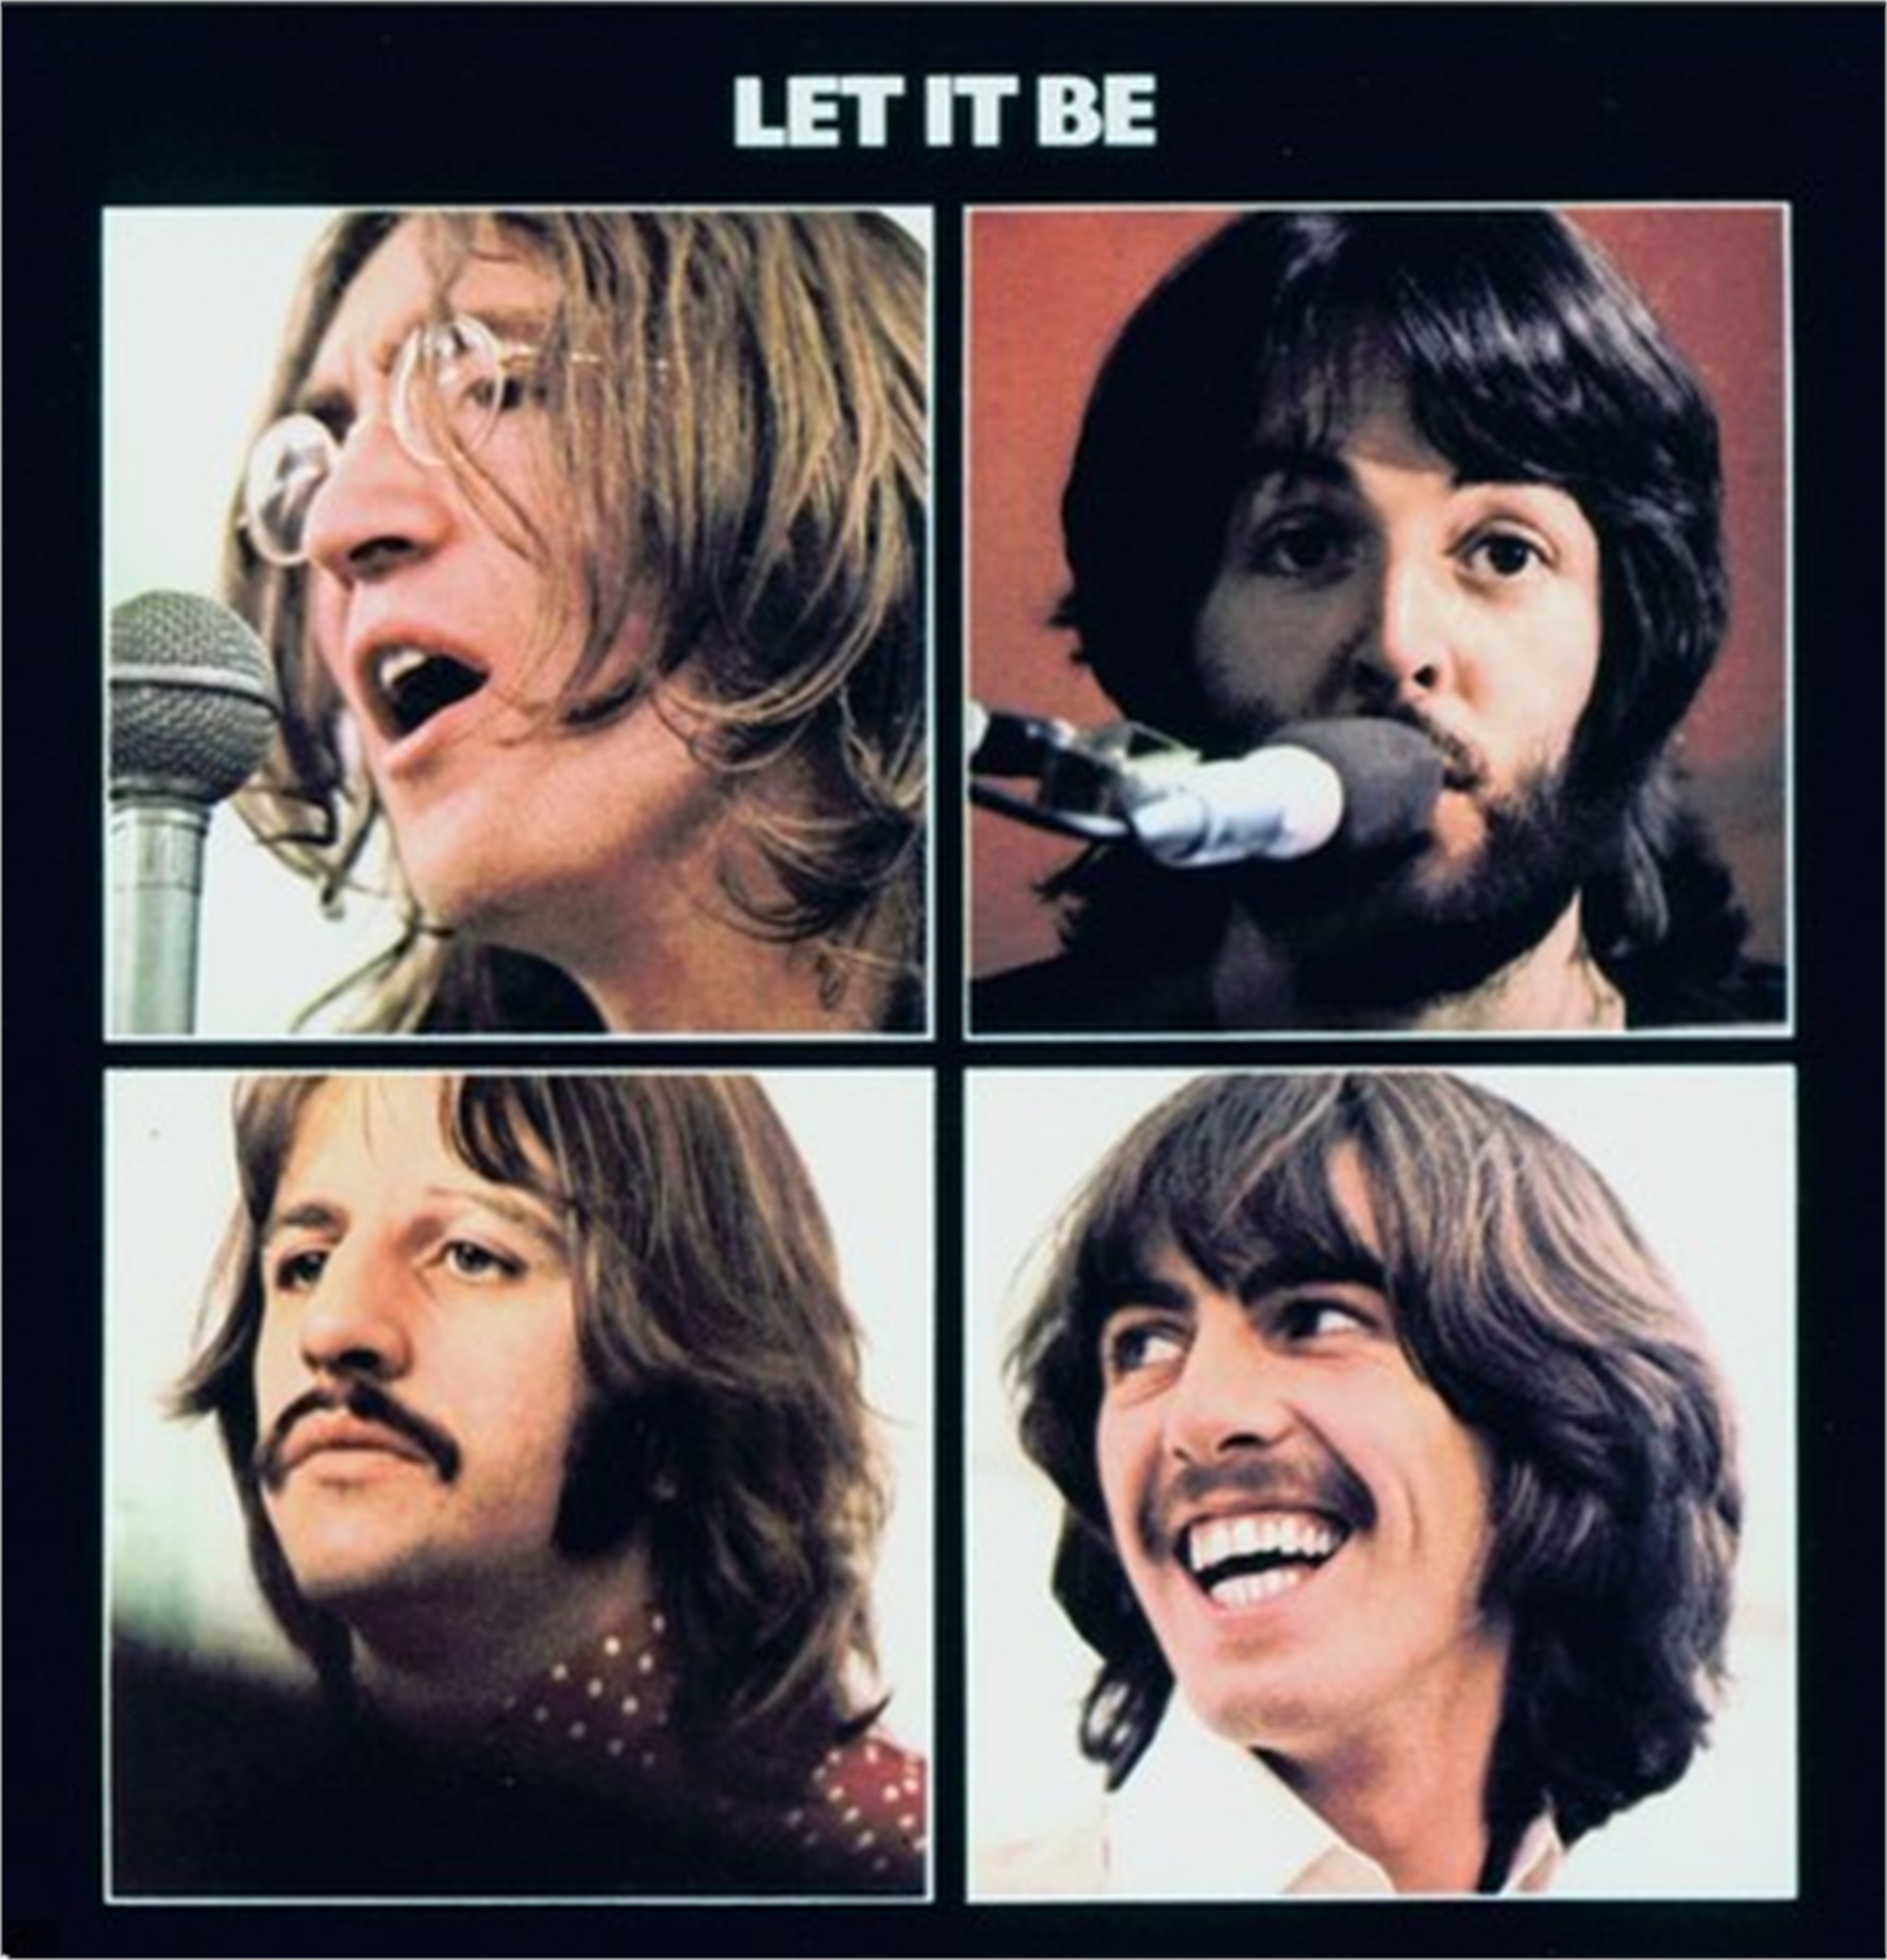 """Let It Be"" - Beatles Album Cover - Hollywood Sign Commission by Bill Mack"